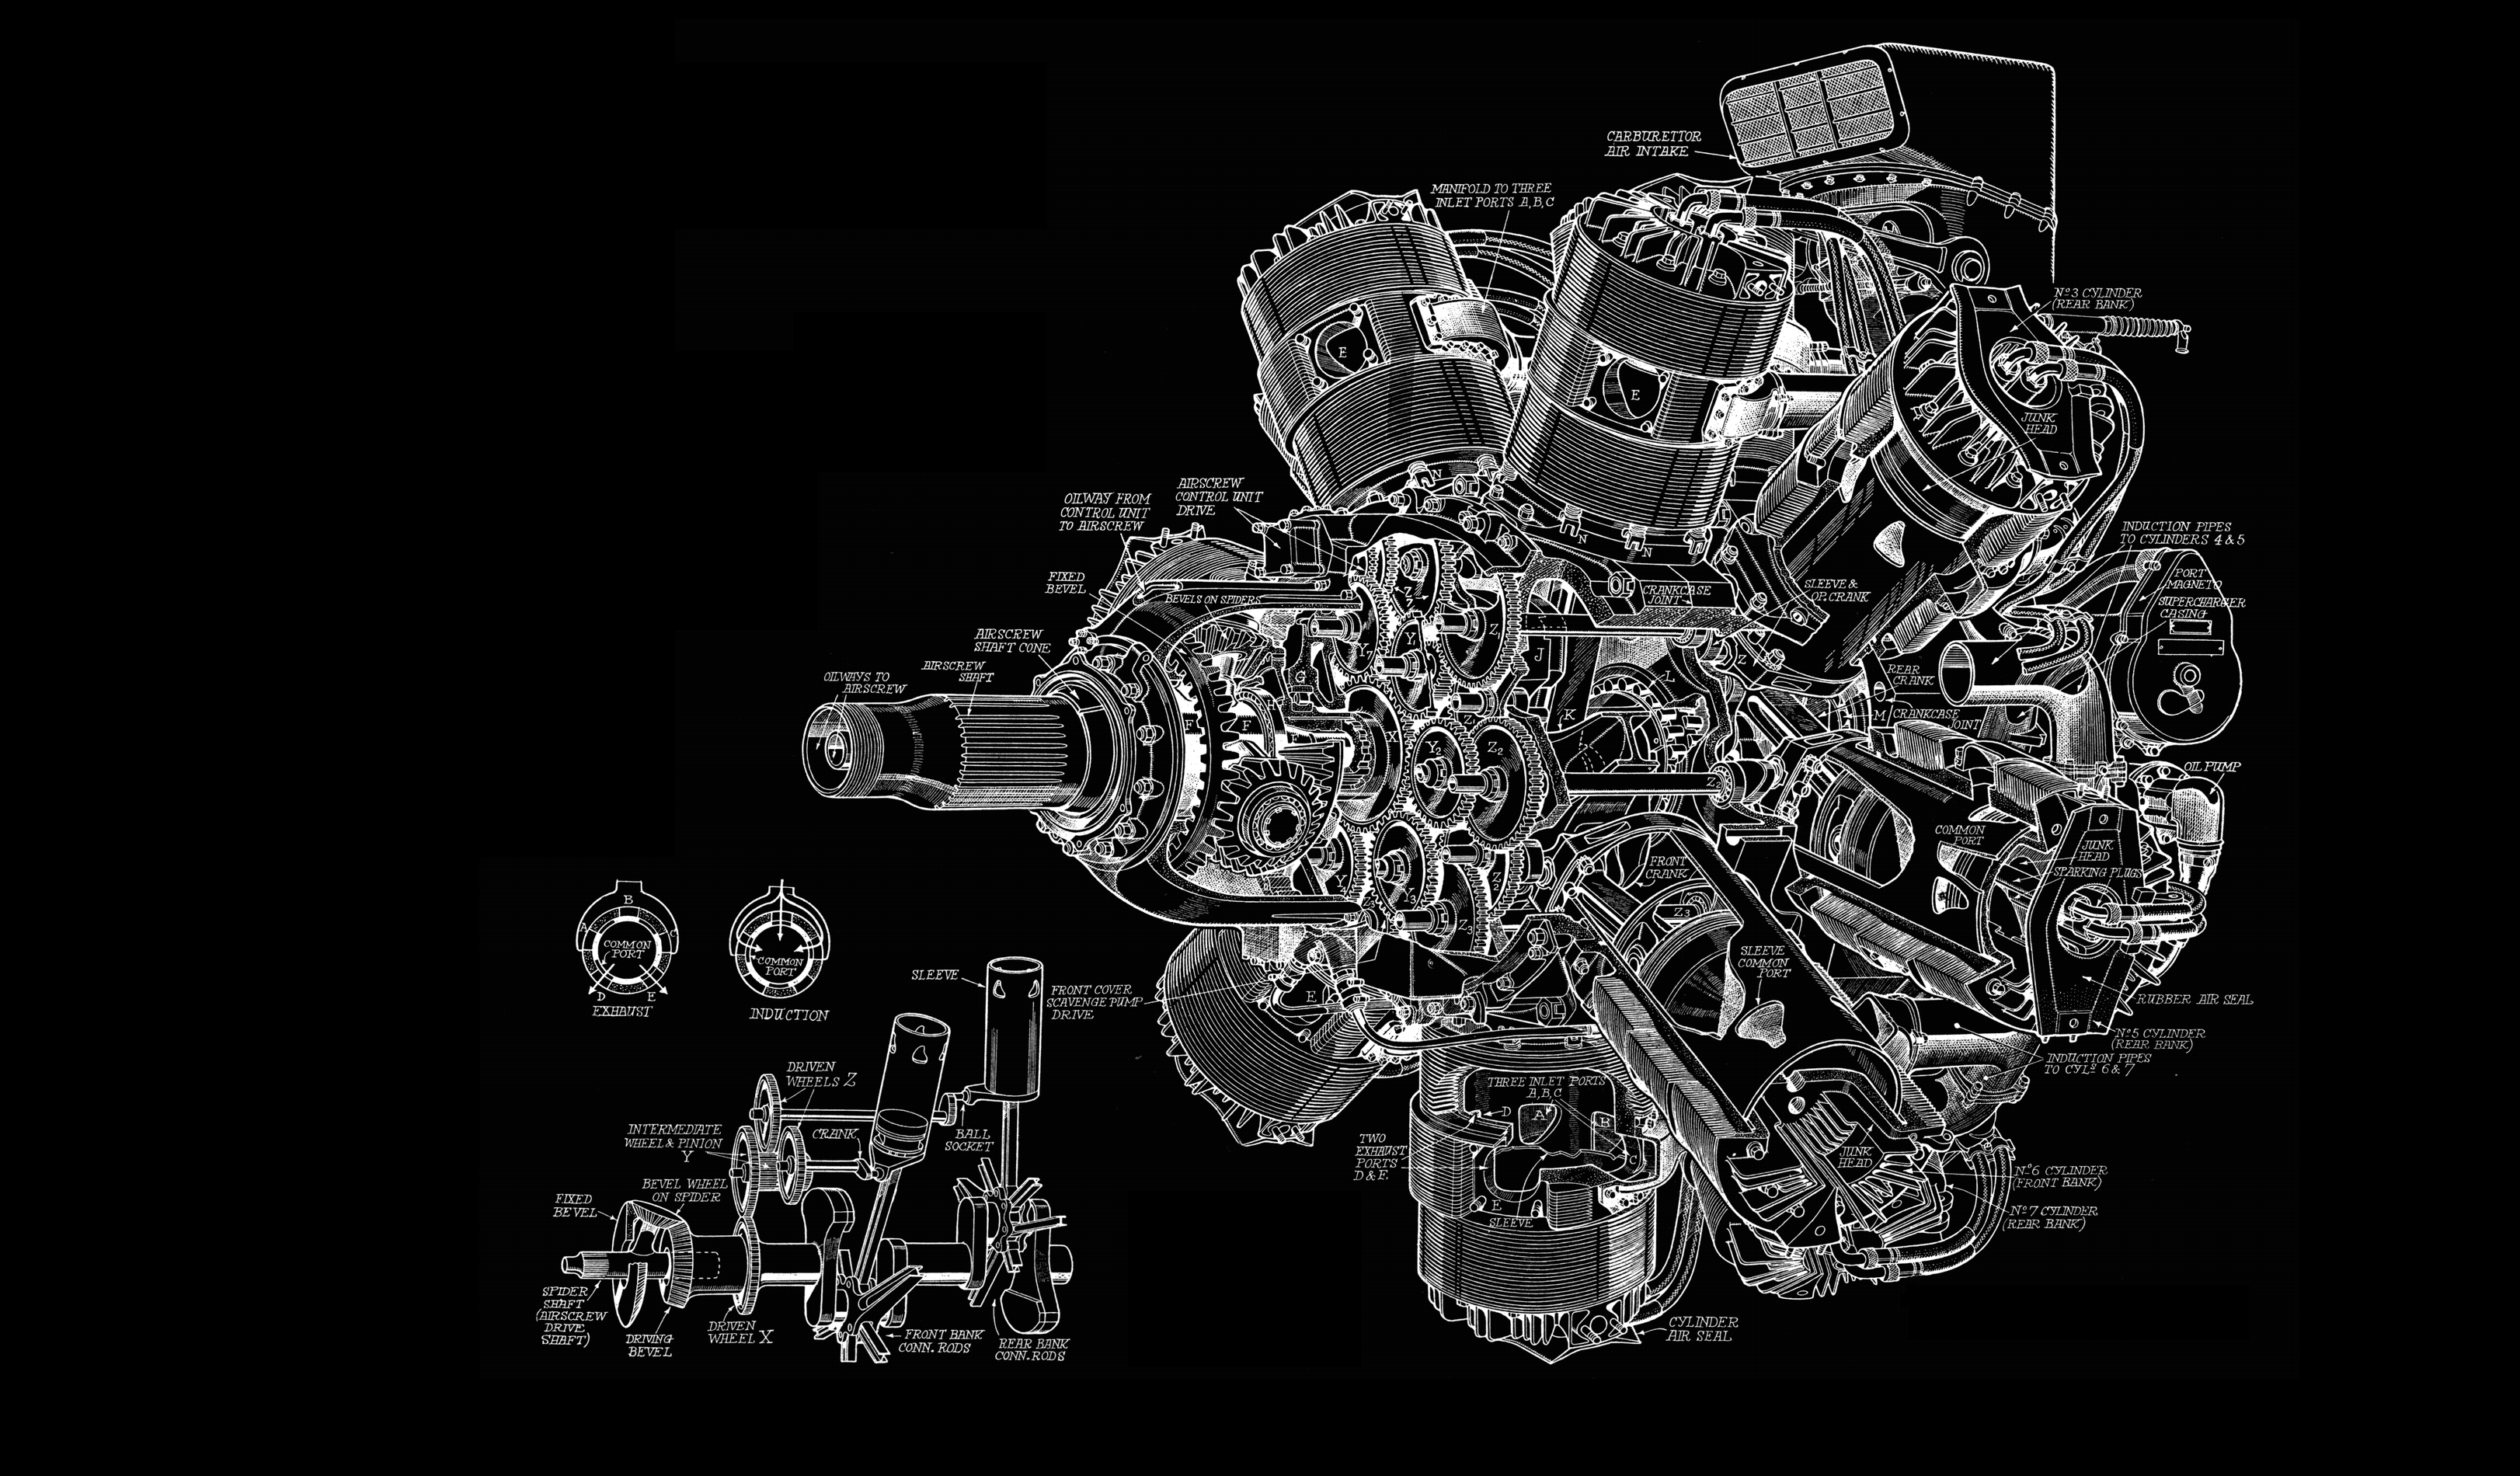 Engine Diagram Bw Black Aircraft Airplane Wallpaper Wallpapers Gas Rc Helicopter Parts My